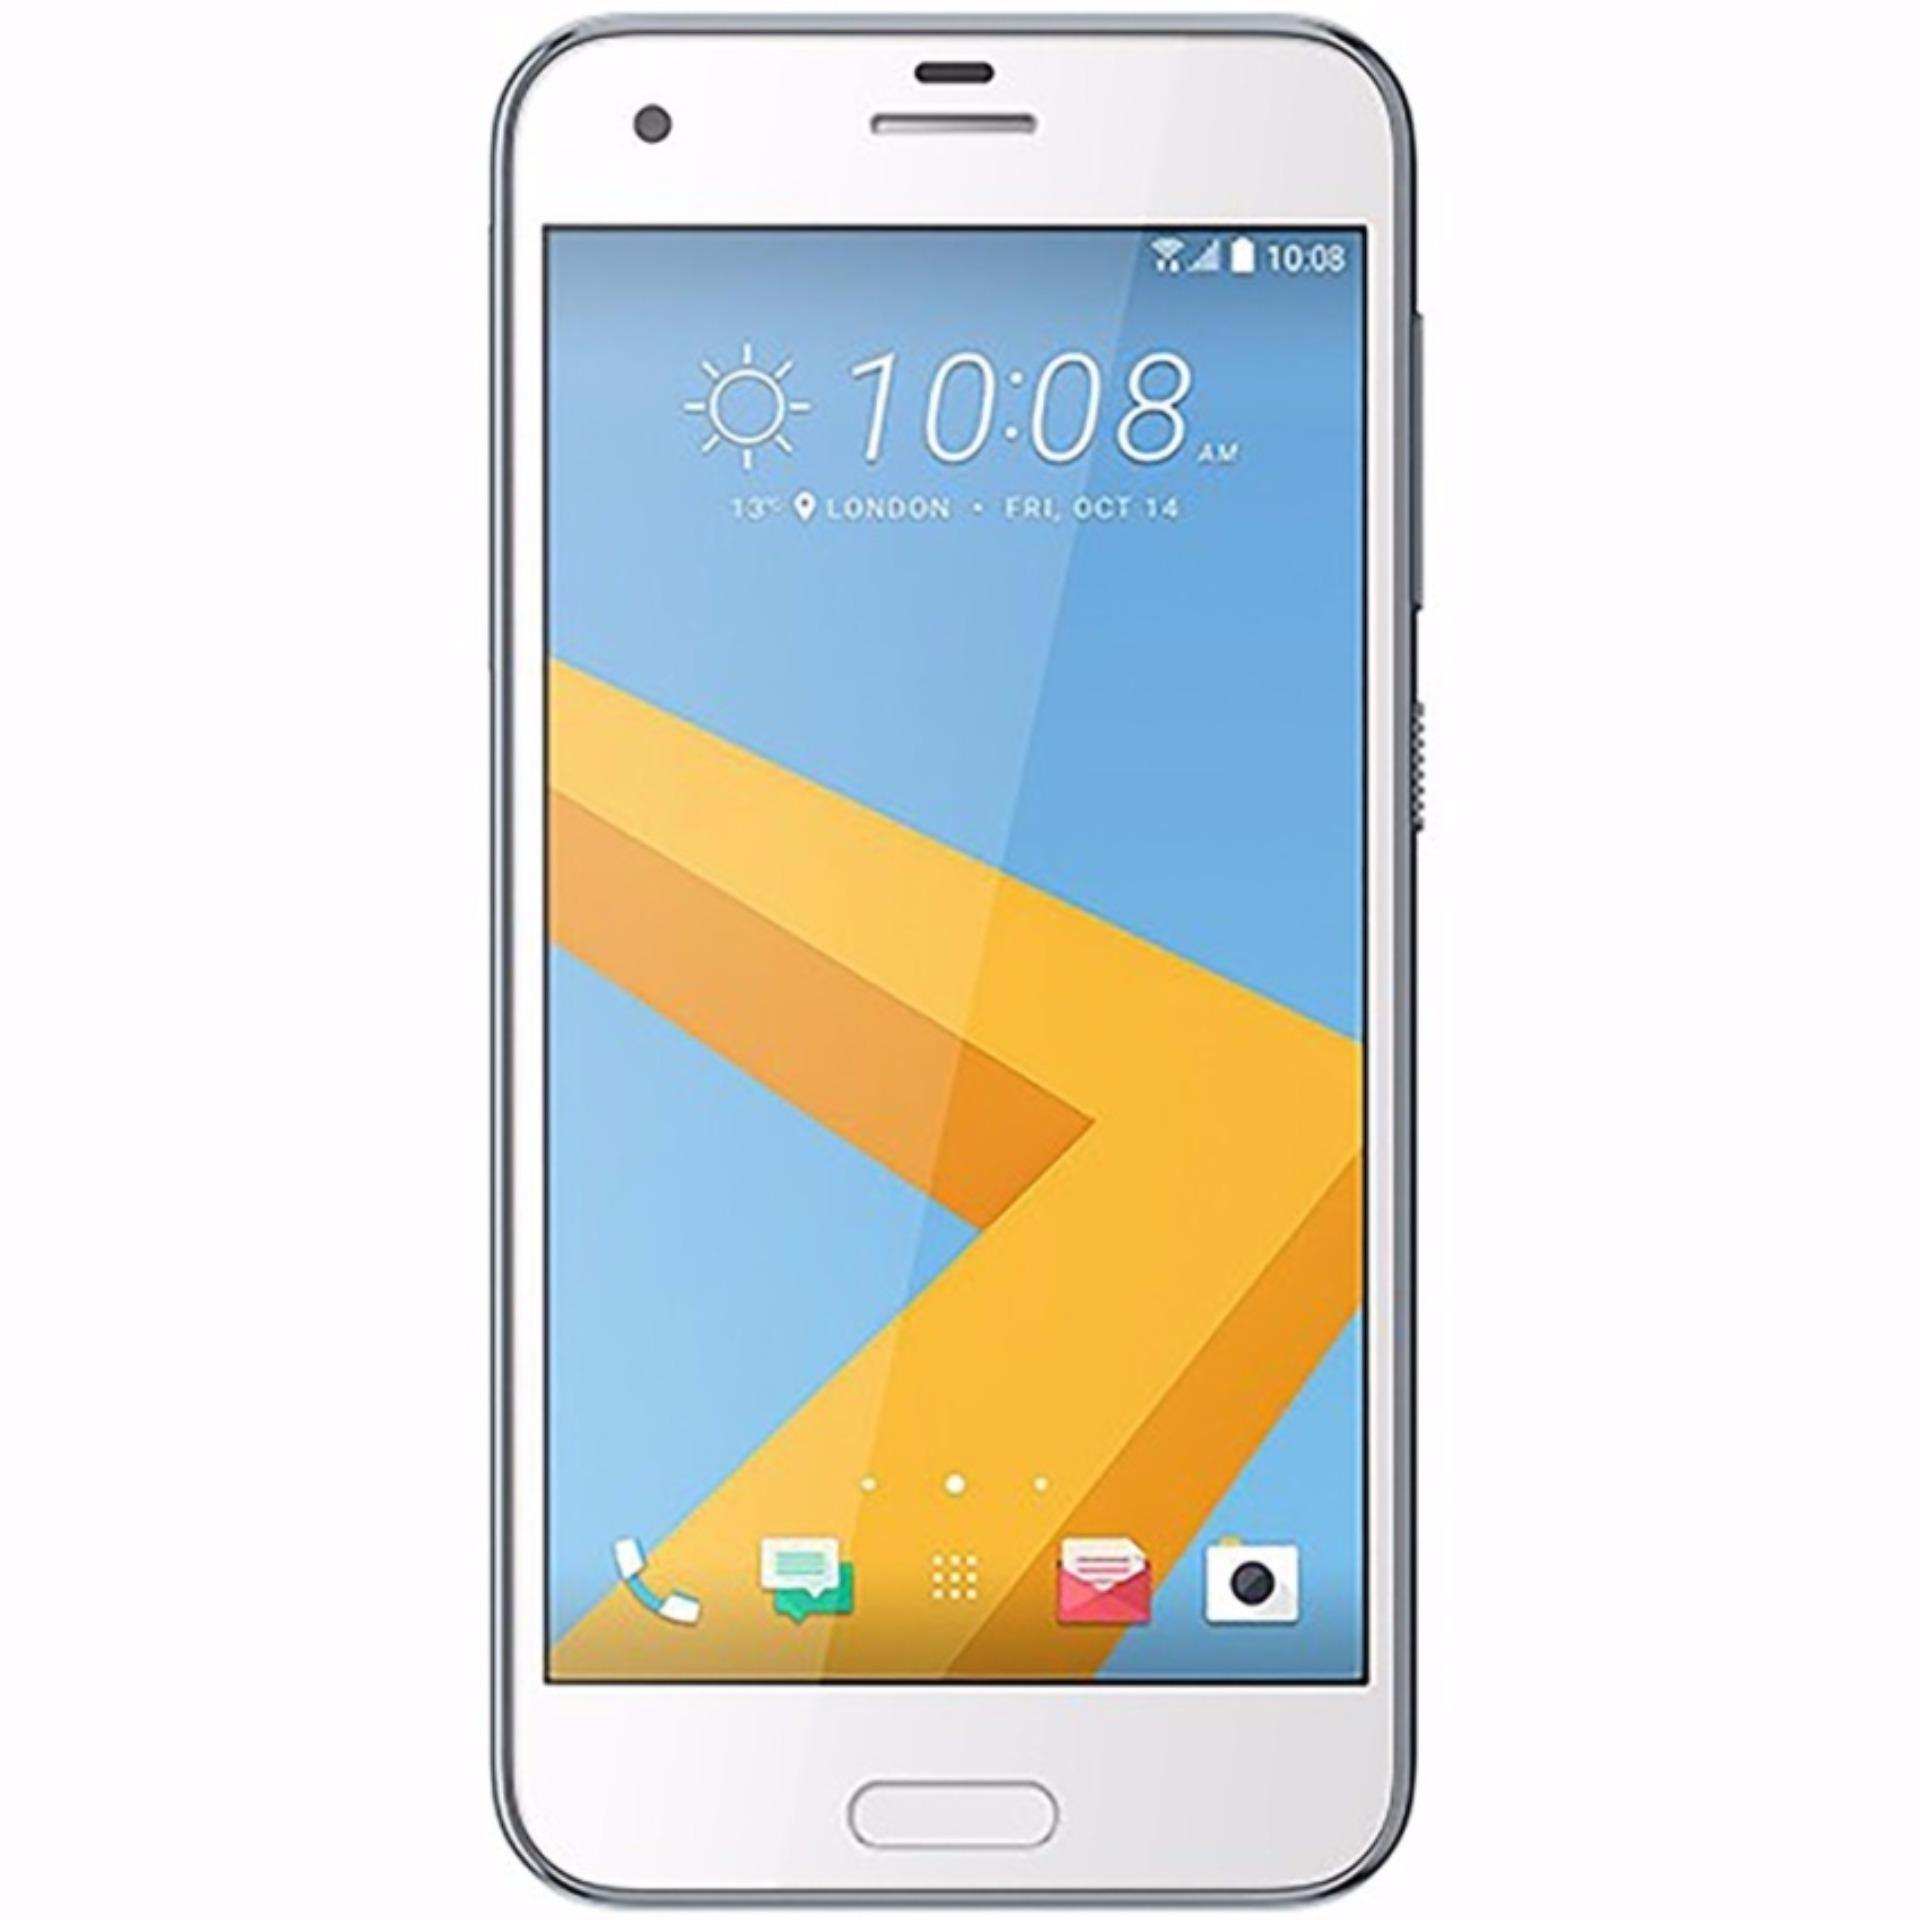 HTC One A9s 149.8g, 8mm thickness Android 6.0 32GB storage, microSD card slot 3GB RAM 13MP Back camera 5MP Front camera